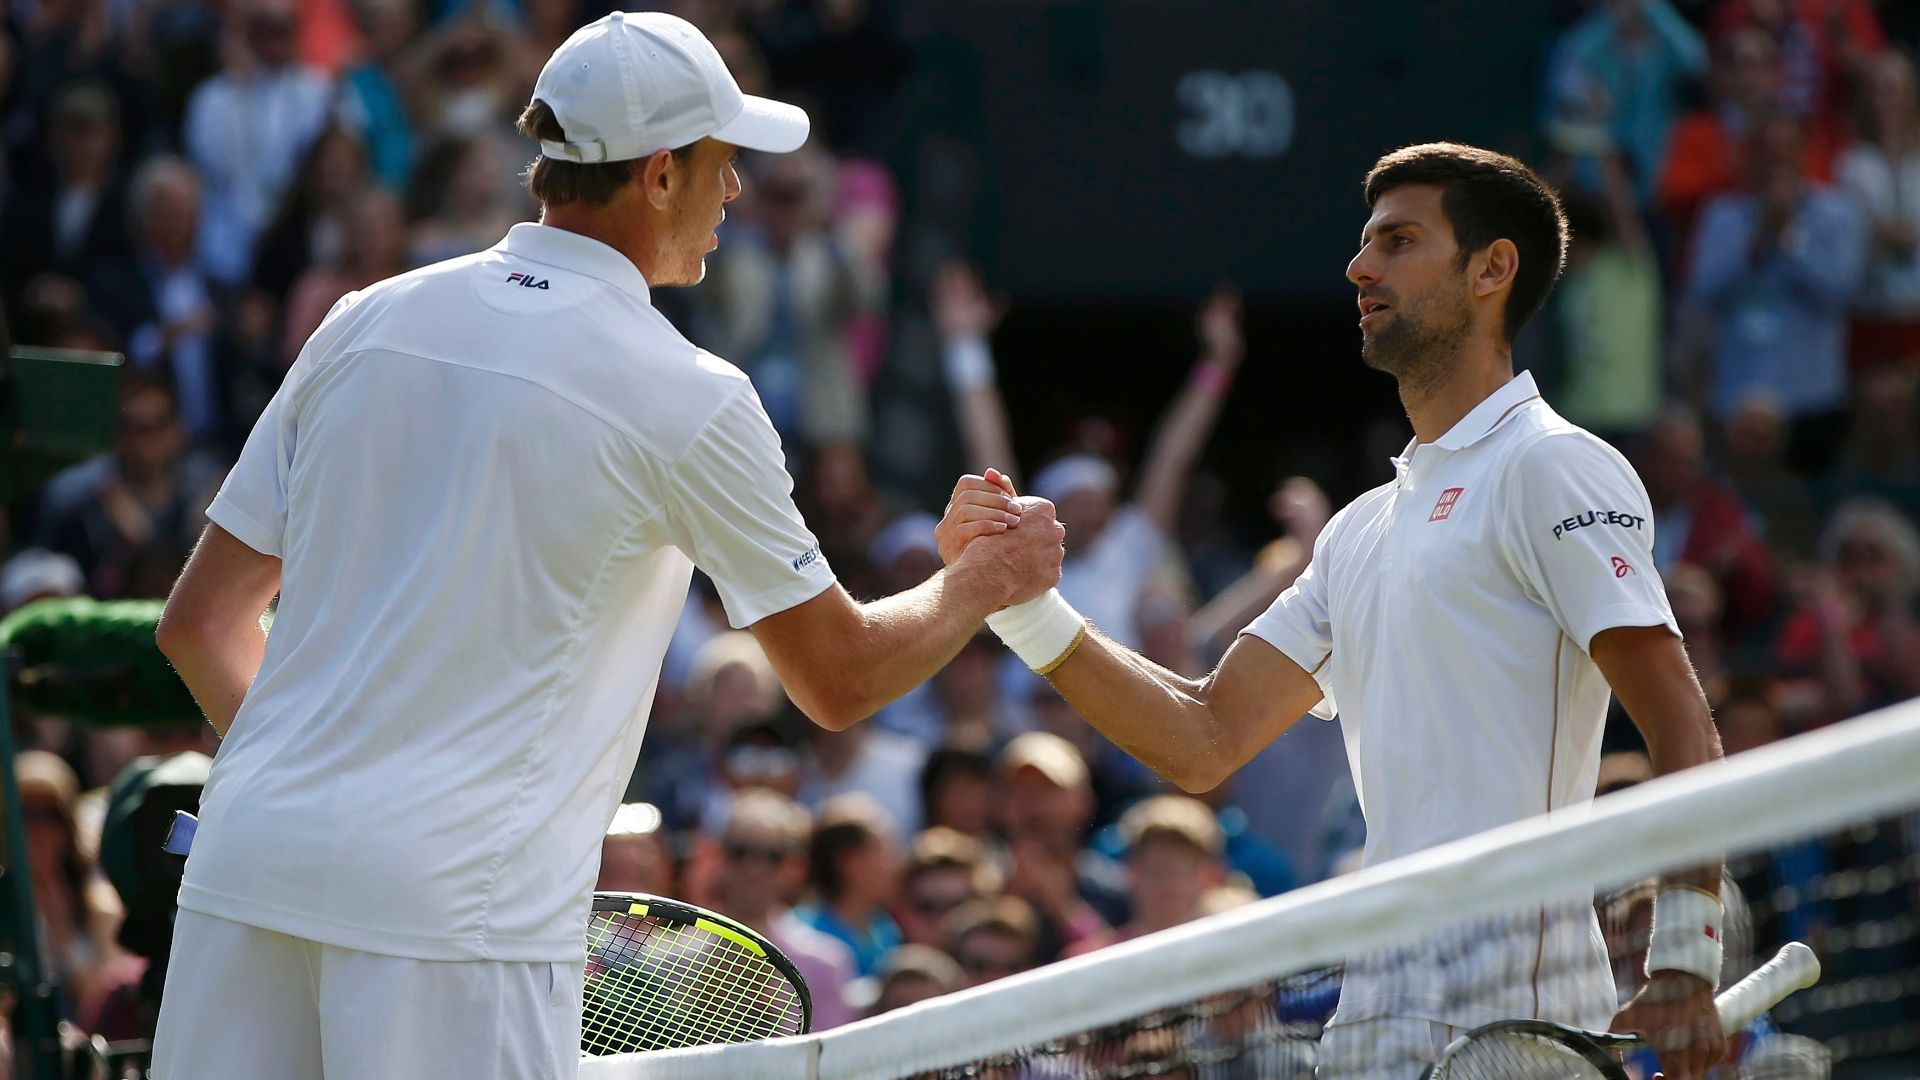 Querrey shocks Djokovic at Wimbledon